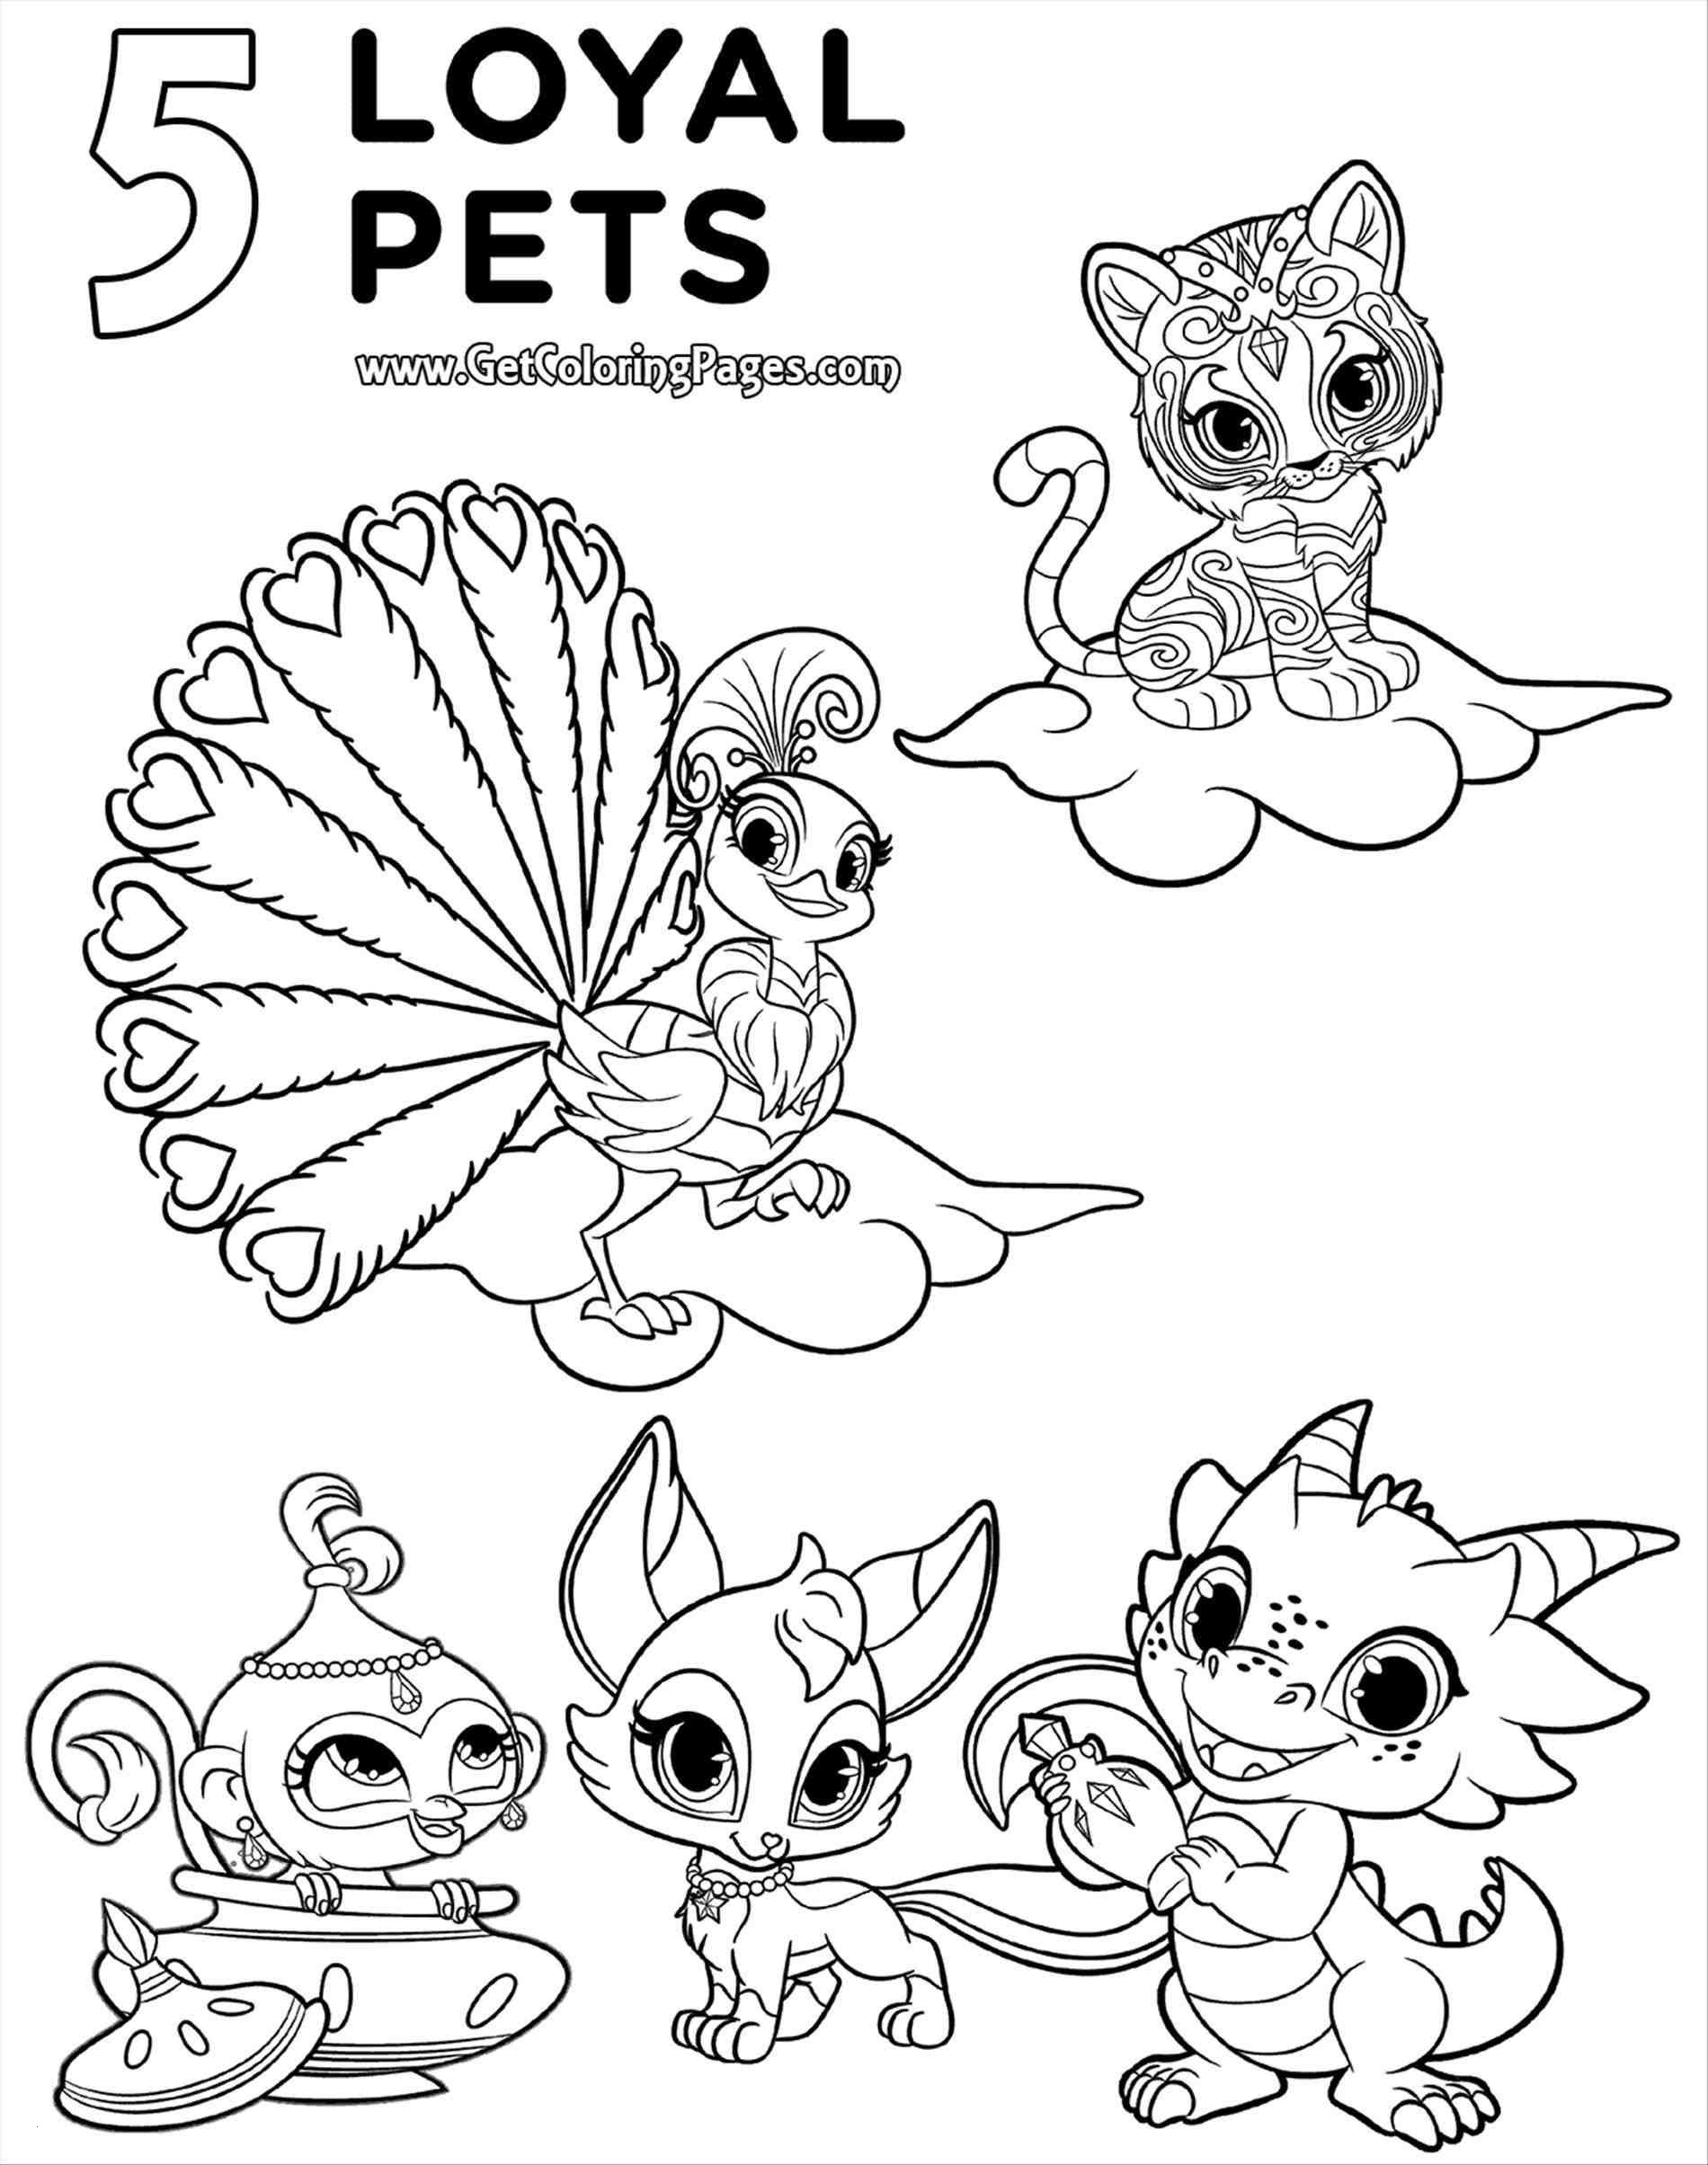 graphic relating to Free Printable Shimmer and Shine Coloring Pages named 30 Printable Shimmer and Glow Coloring Internet pages Obtain